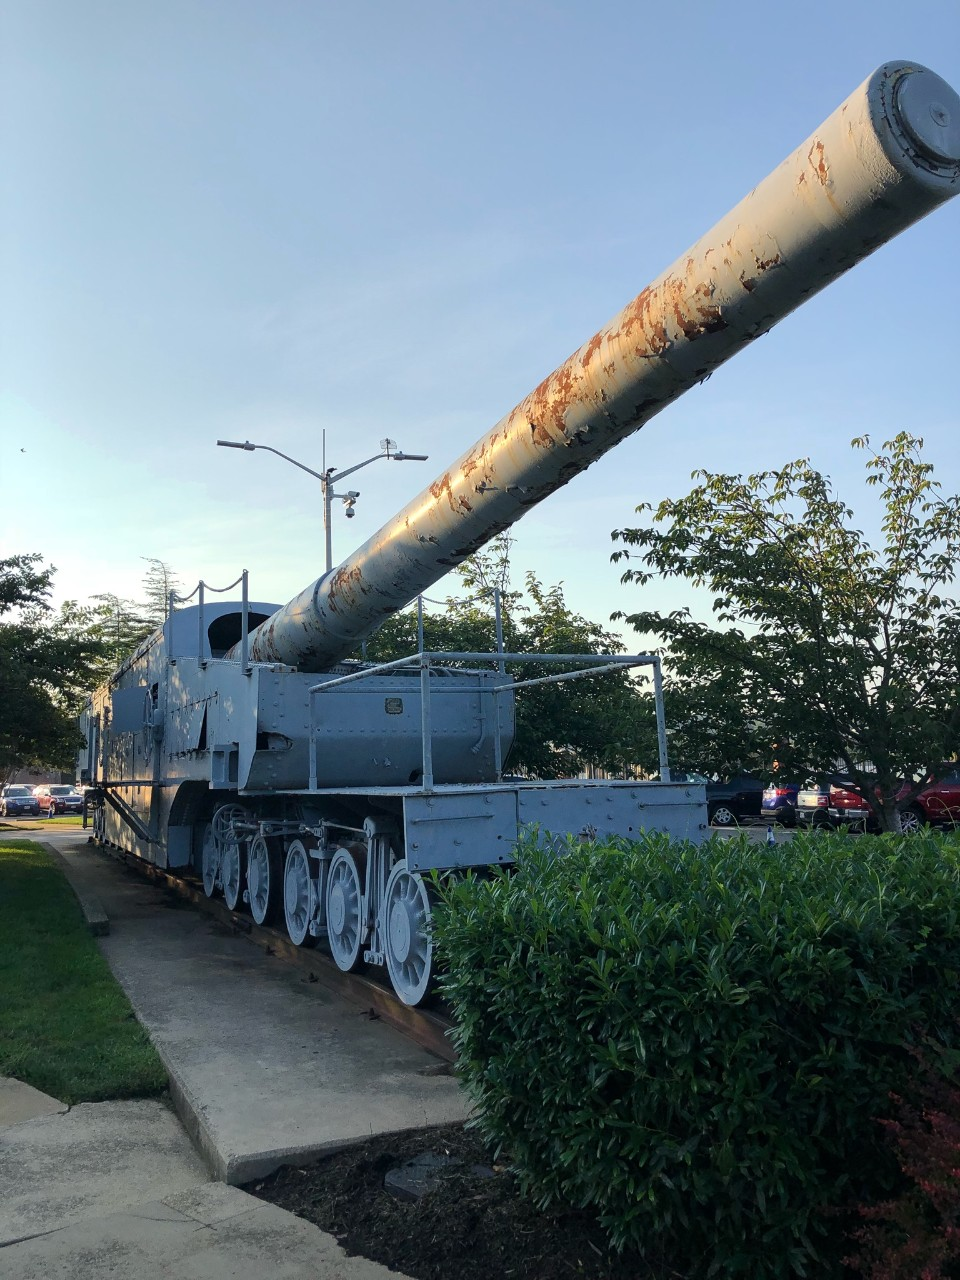 World War I-era 14-inch naval railway gun displayed in Willard Park, Washington Navy Yard.